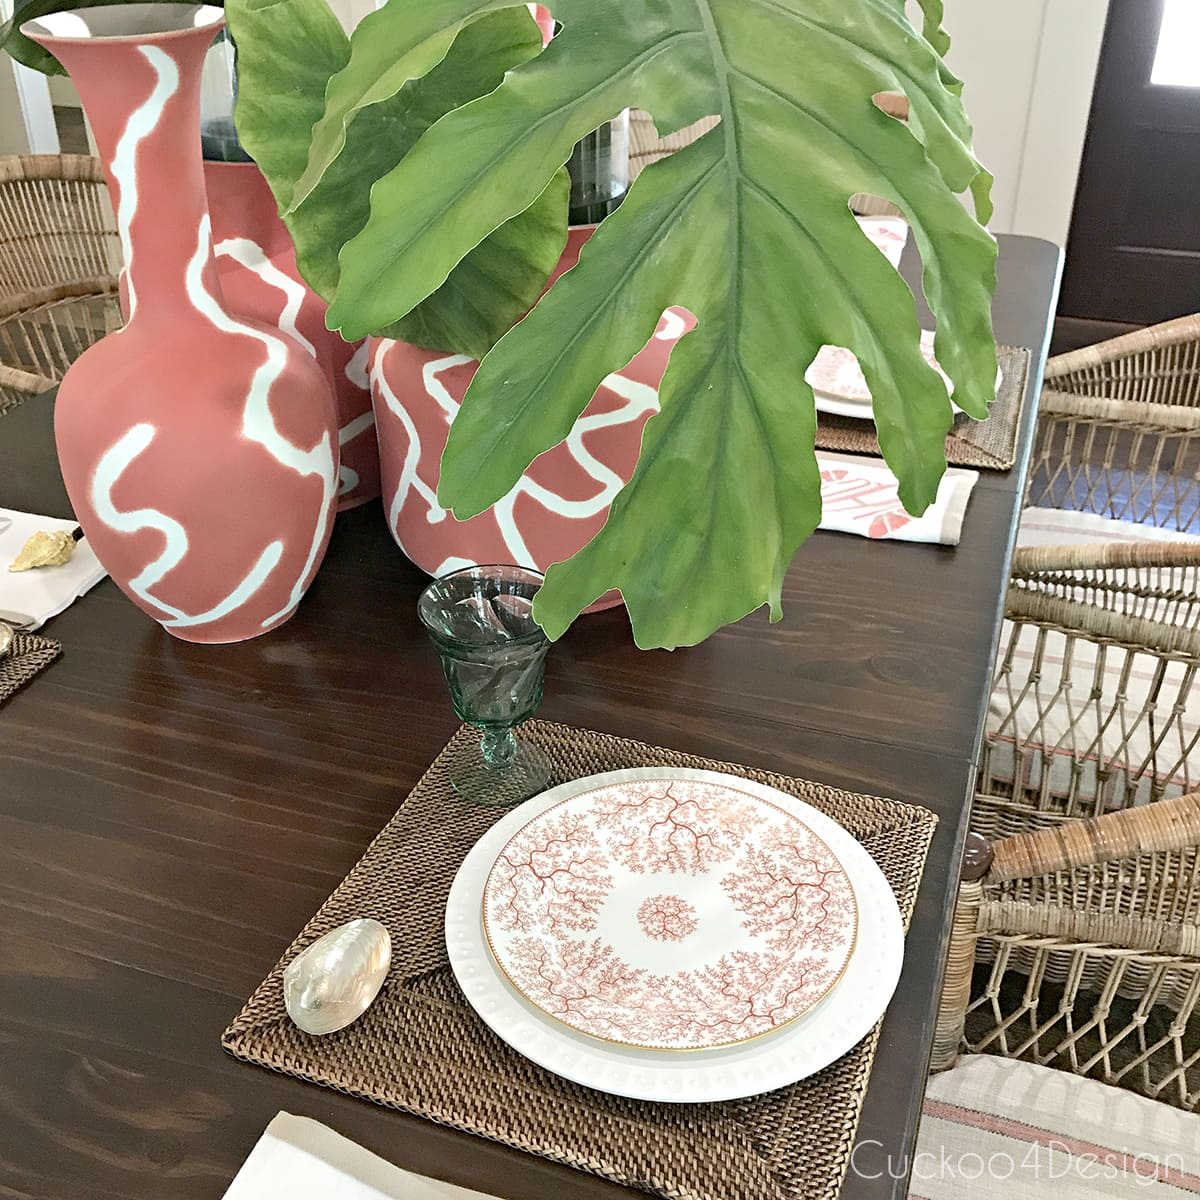 20 Decorating Ideas From The Southern Living Idea House: Southern Living Idea House 2017 (part 1)